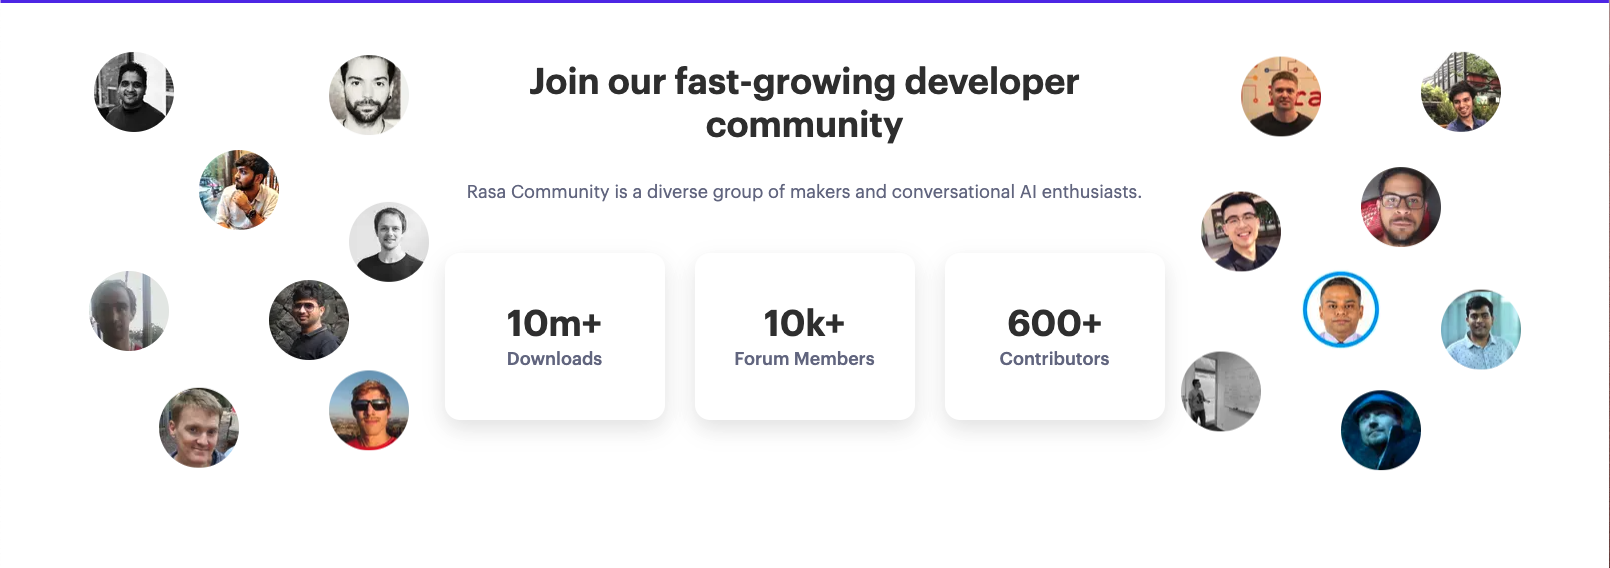 Rasa has been downloaded 10+ million times and is loved by developers around the world